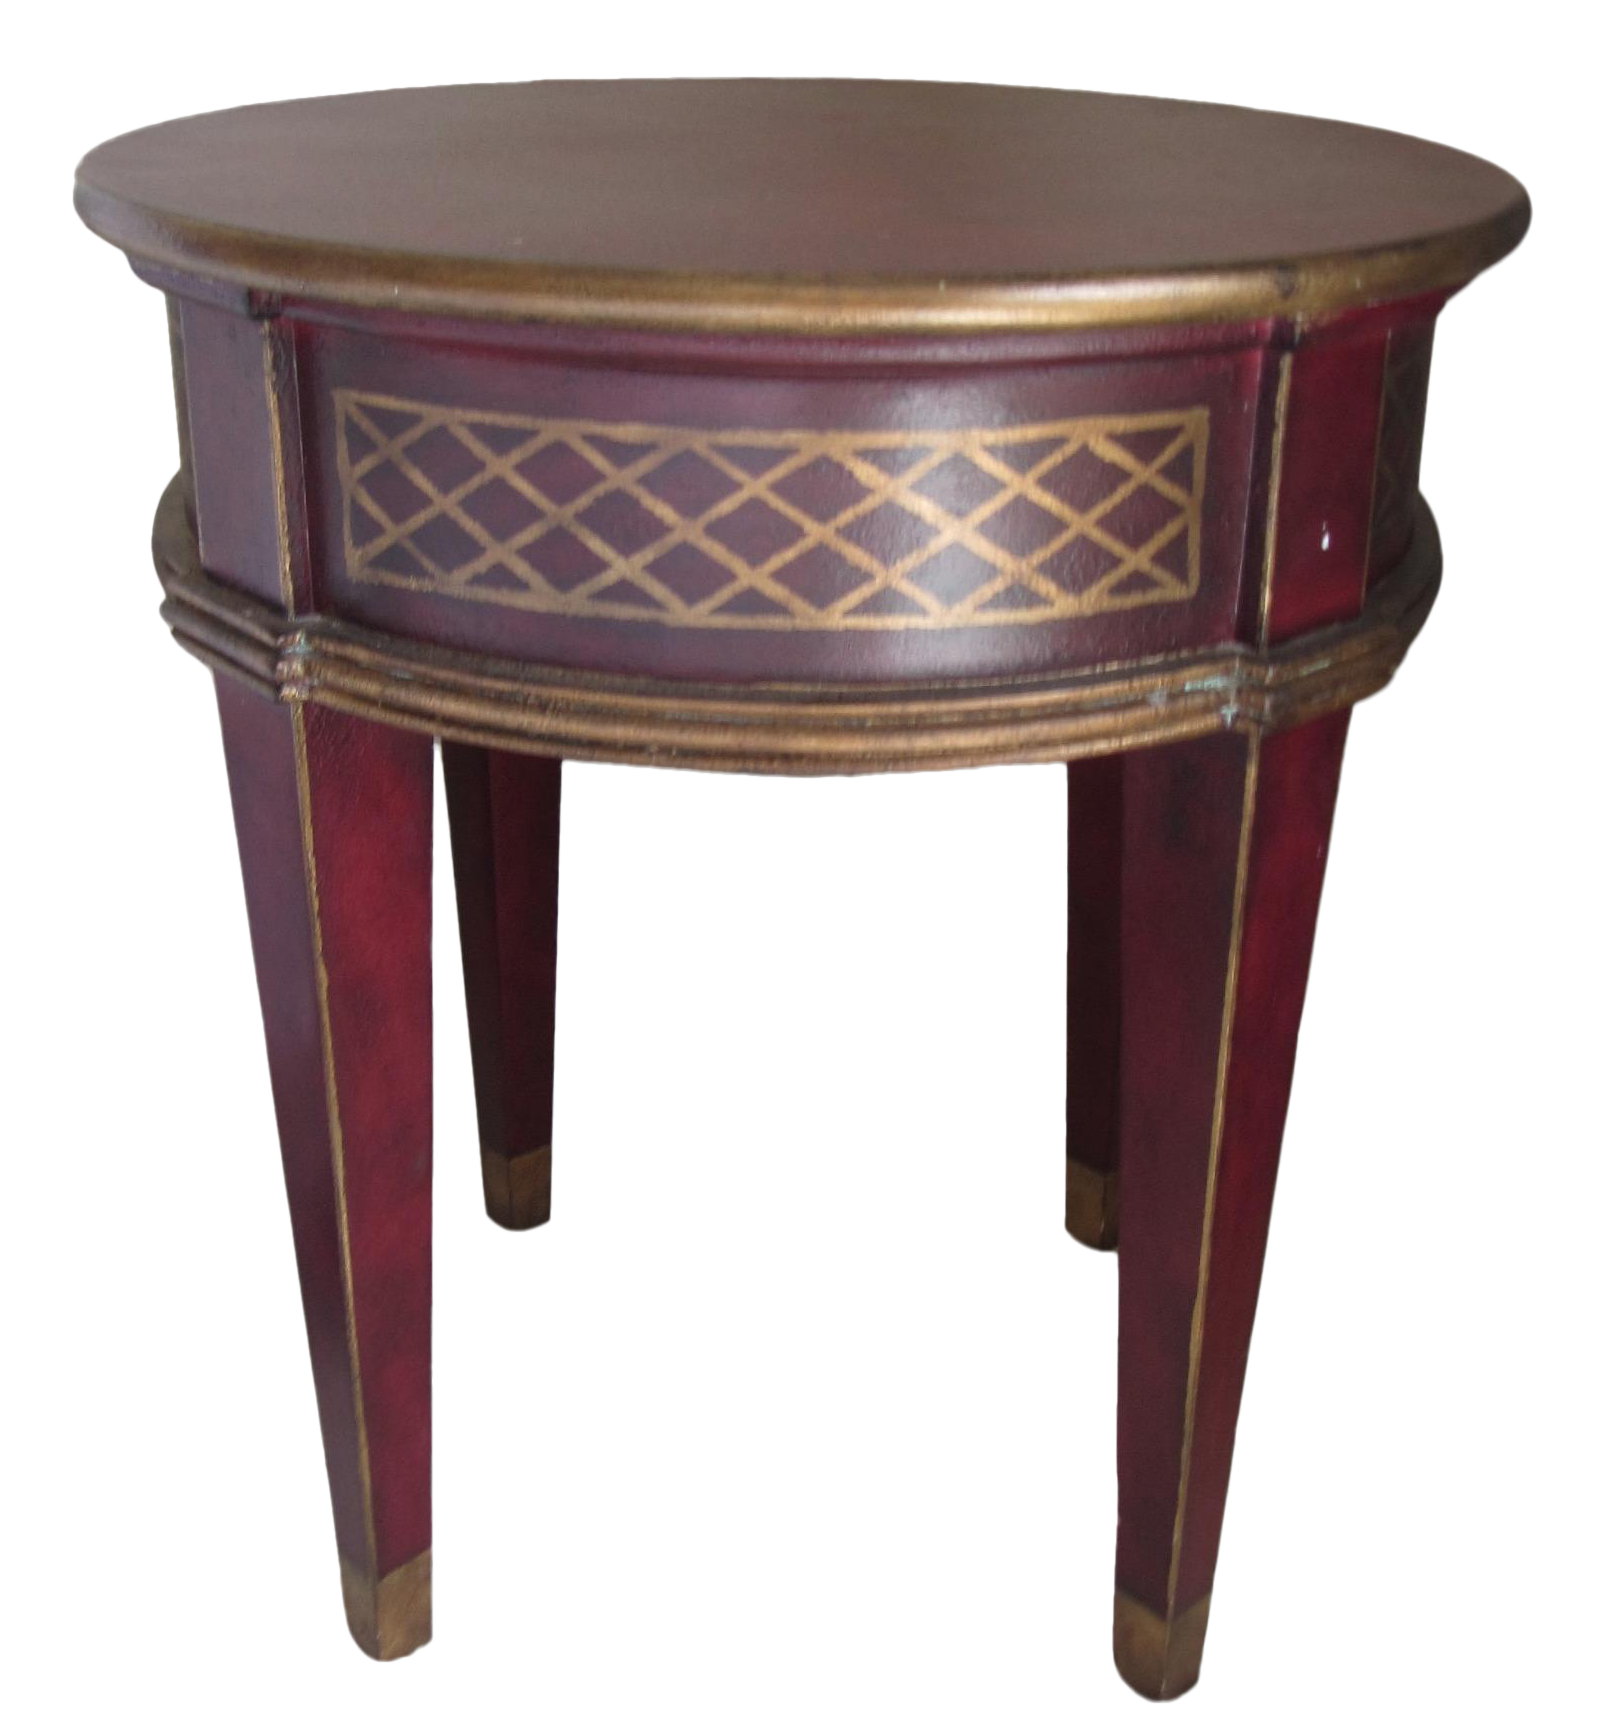 Round Red & Gold Painted End Table | Chairish